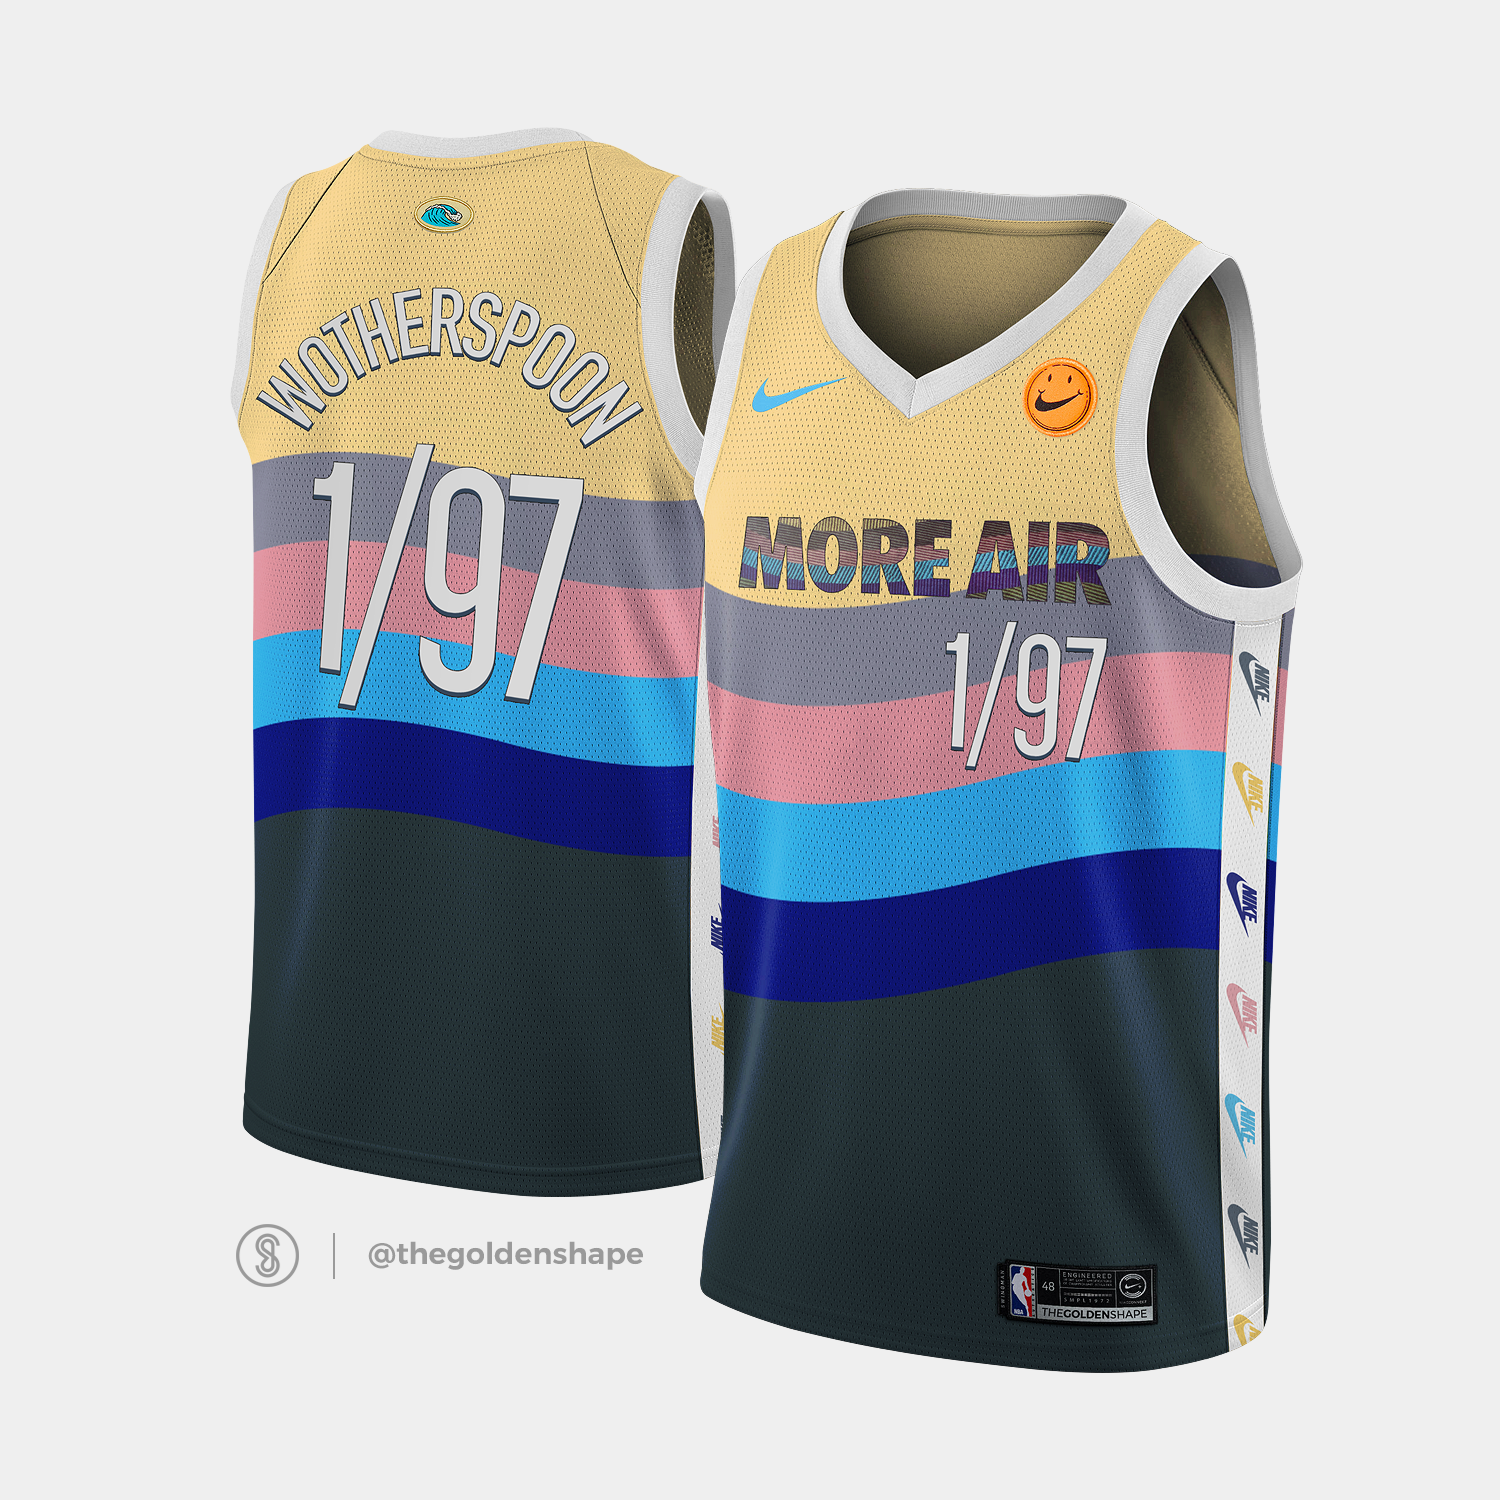 554309ae Sean Wotherspoon x NBA Jersey 1/97 More Air | threads | Sean ...